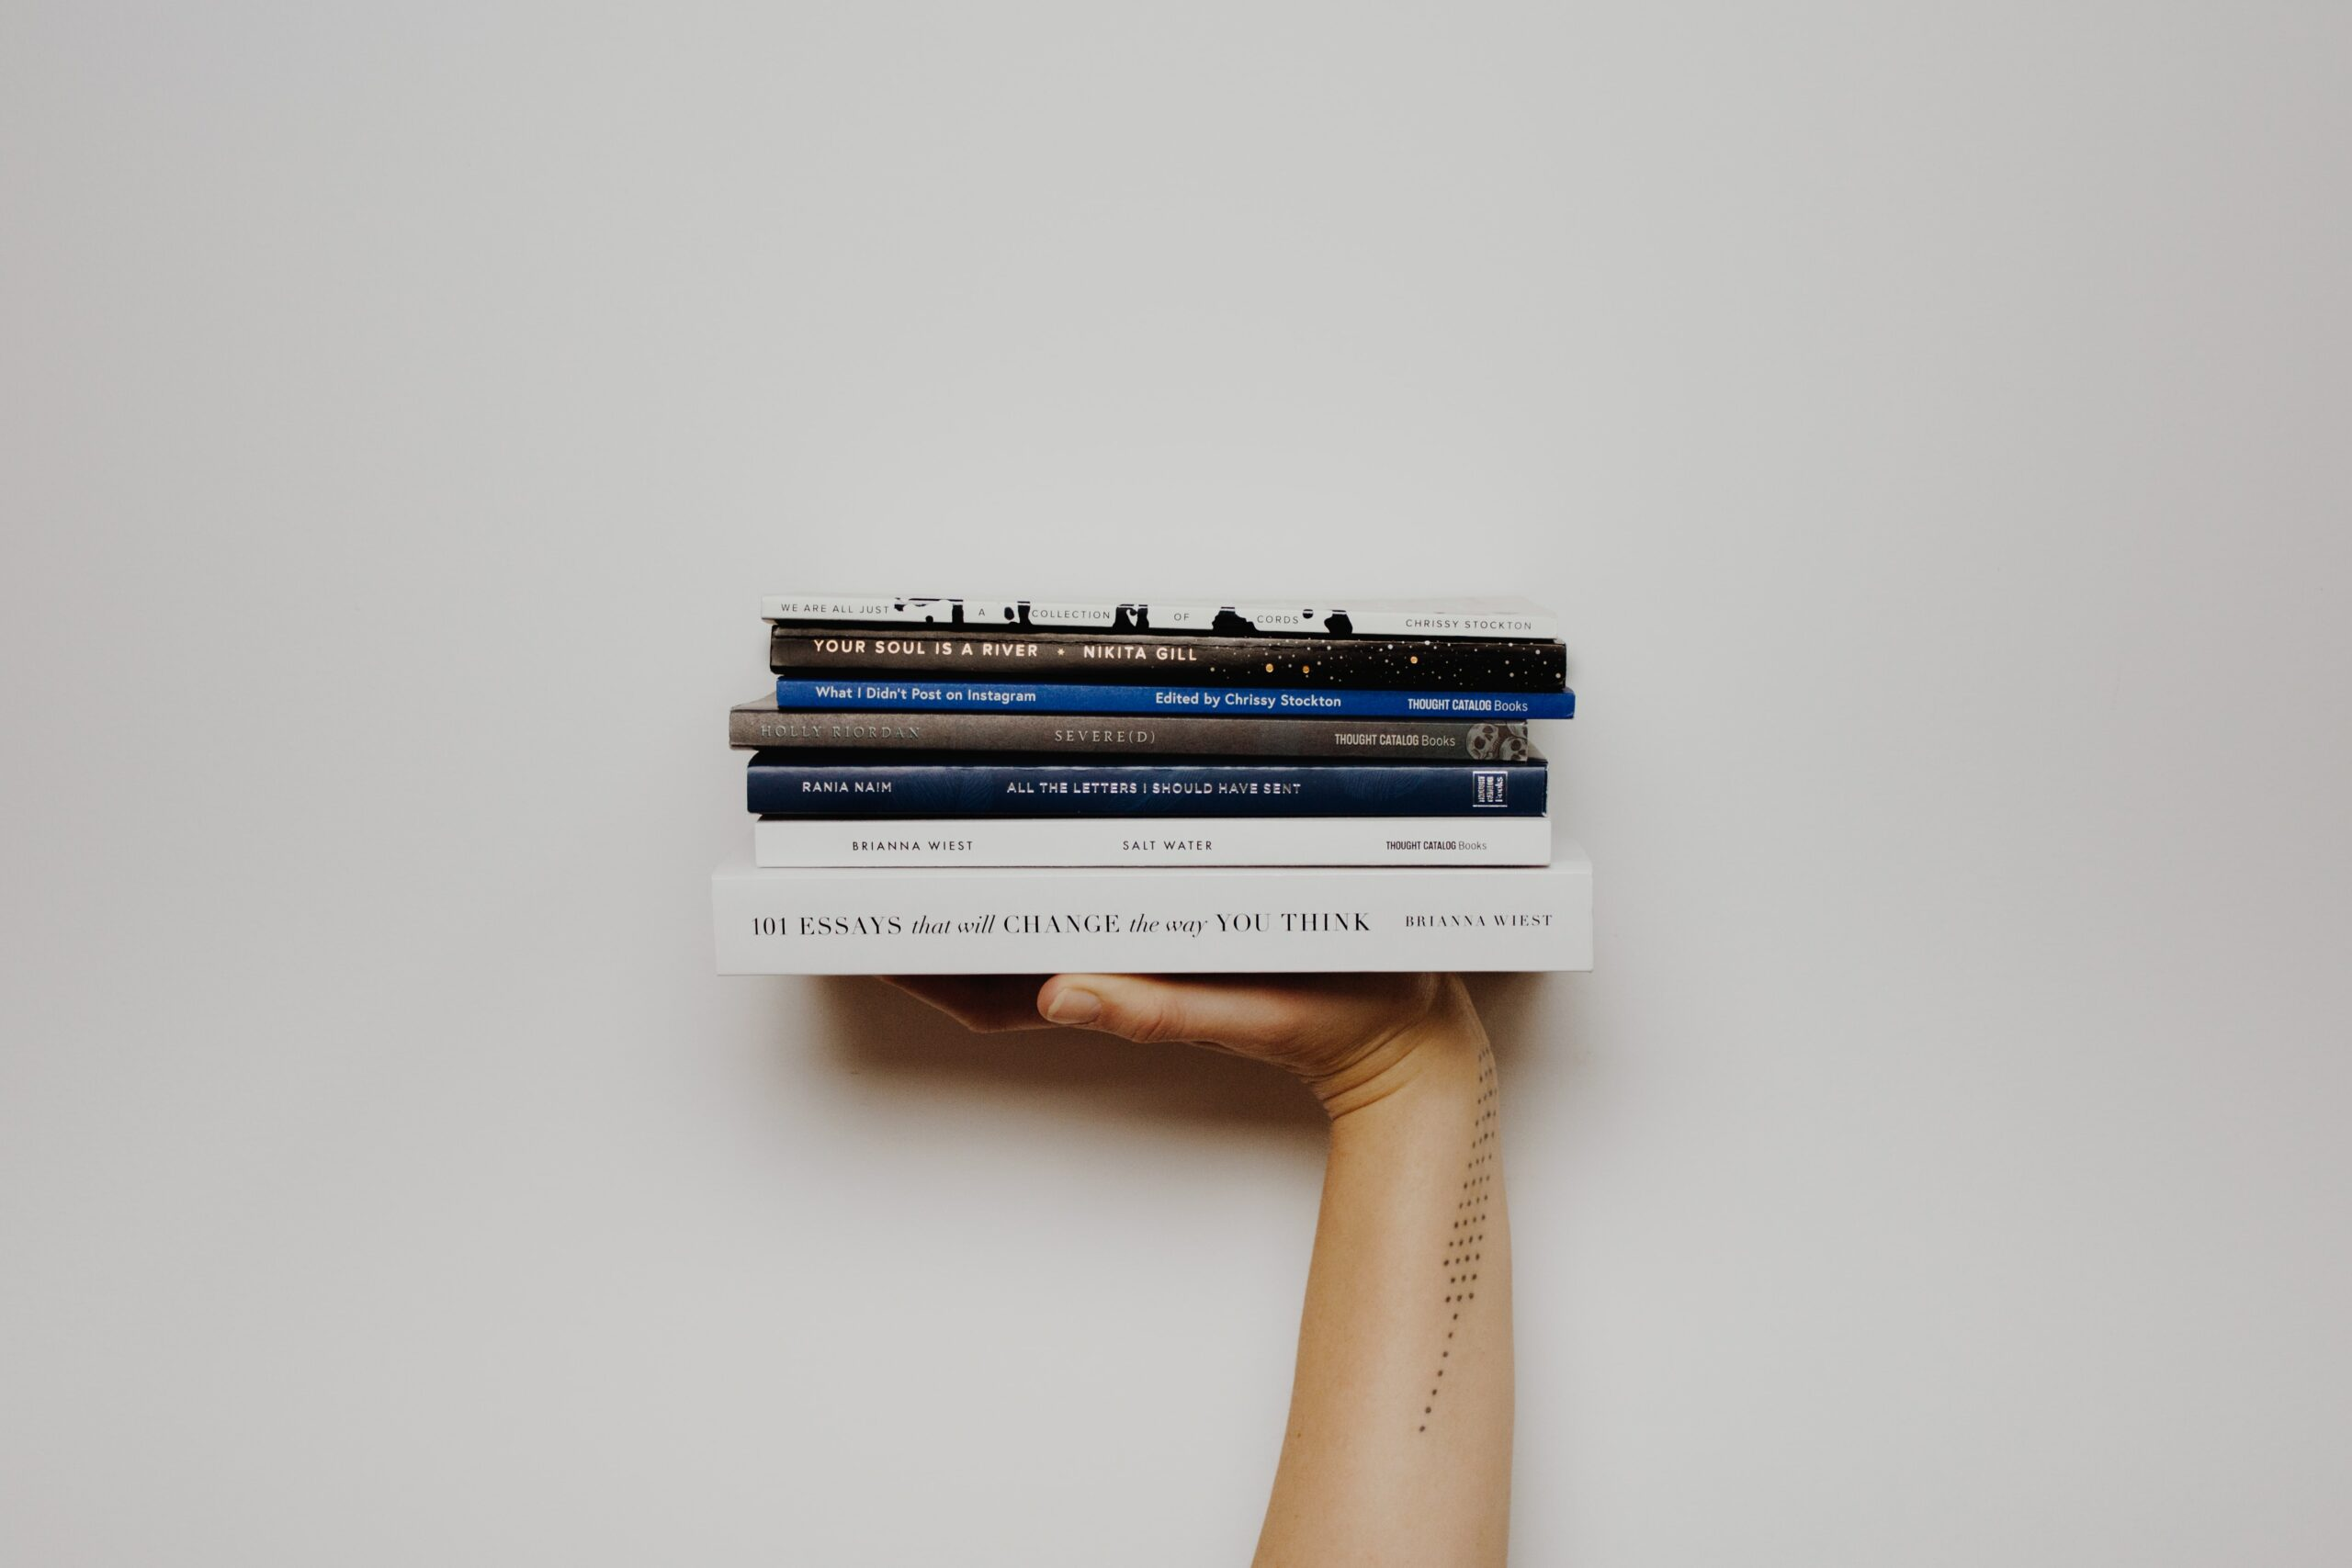 a pile of book on top of a hand